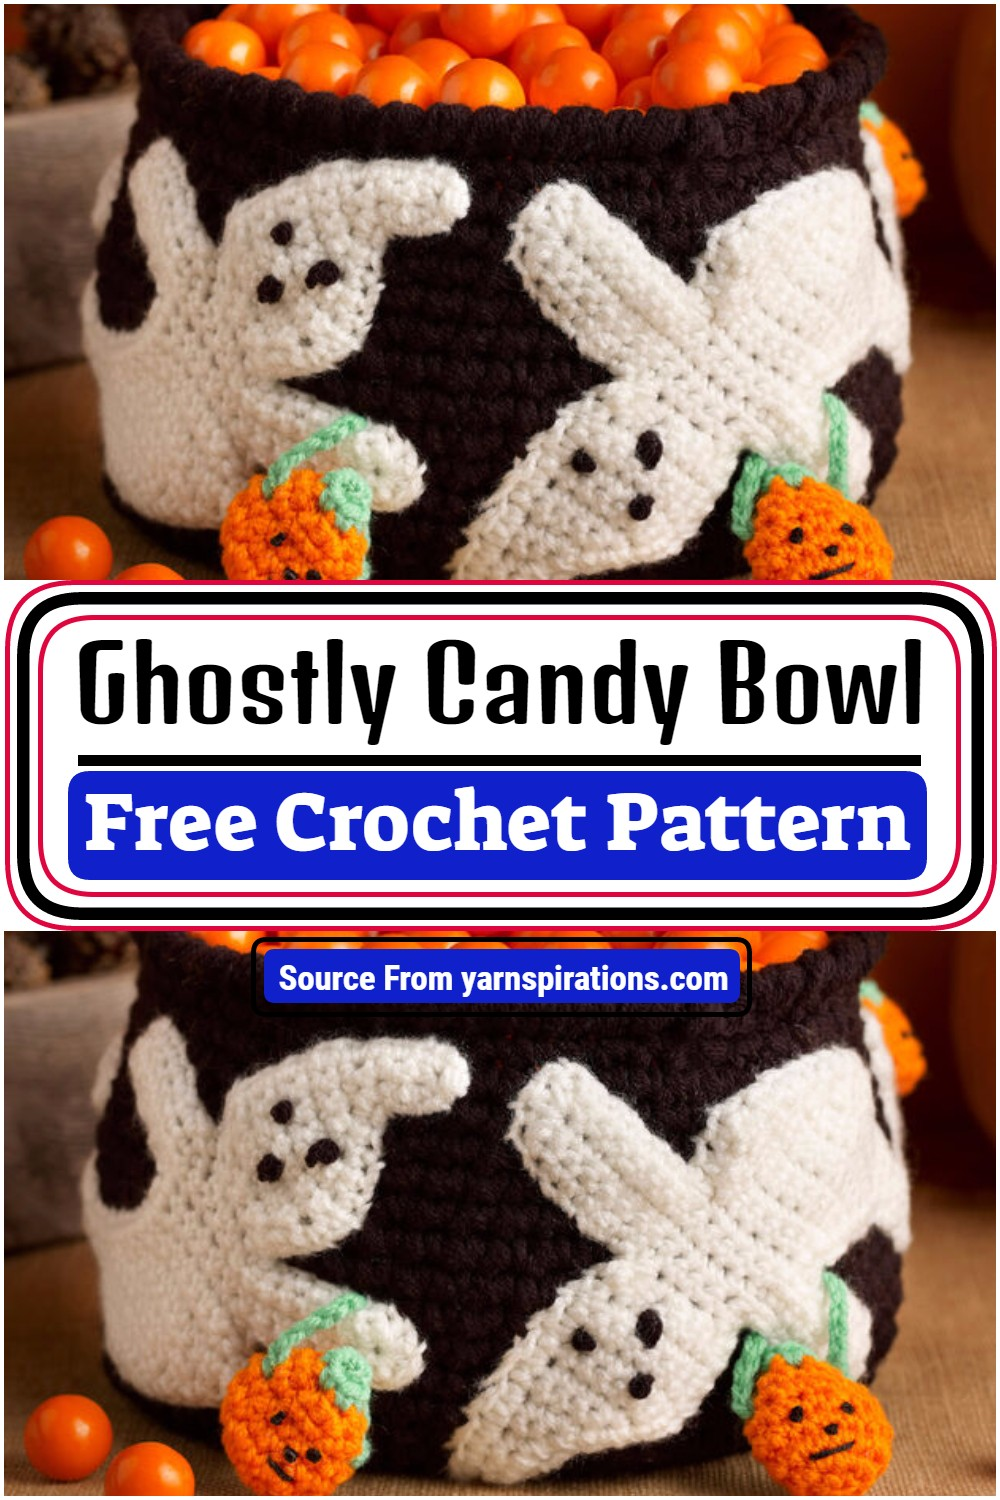 Ghostly Candy Crochet Bowl Pattern